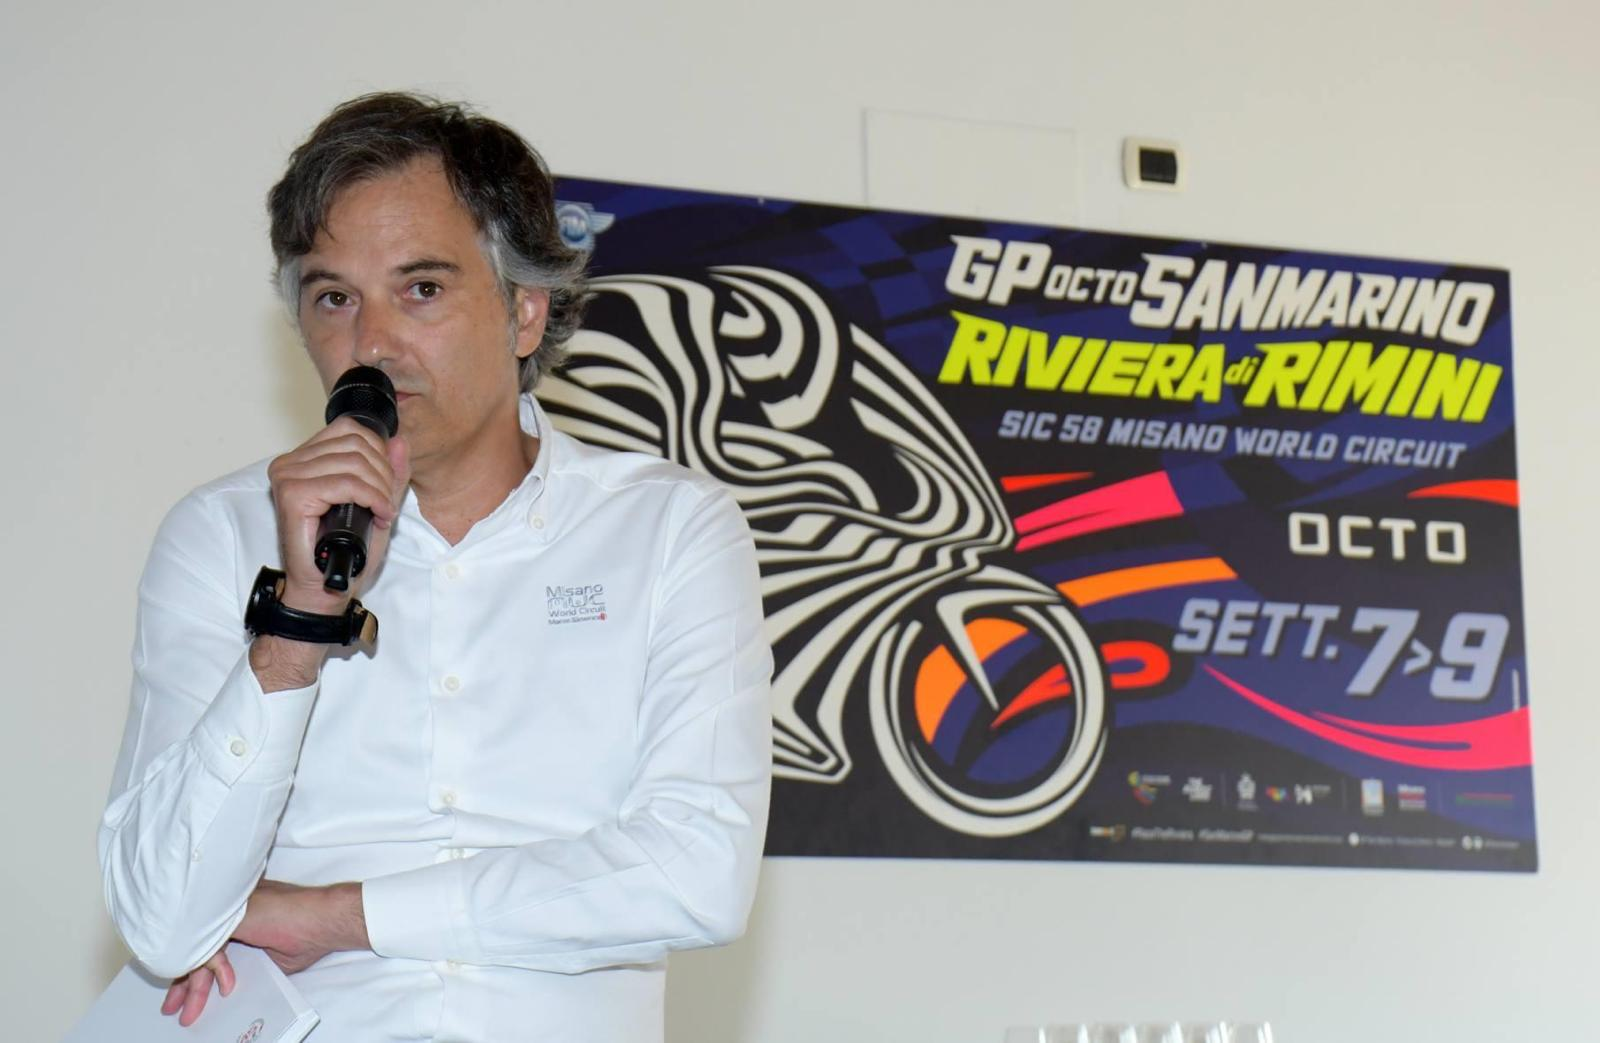 Motogp 2020 Calendar The Dates Partial Opening To Fans For Misano With Monza F1 Doubt Gpone Com